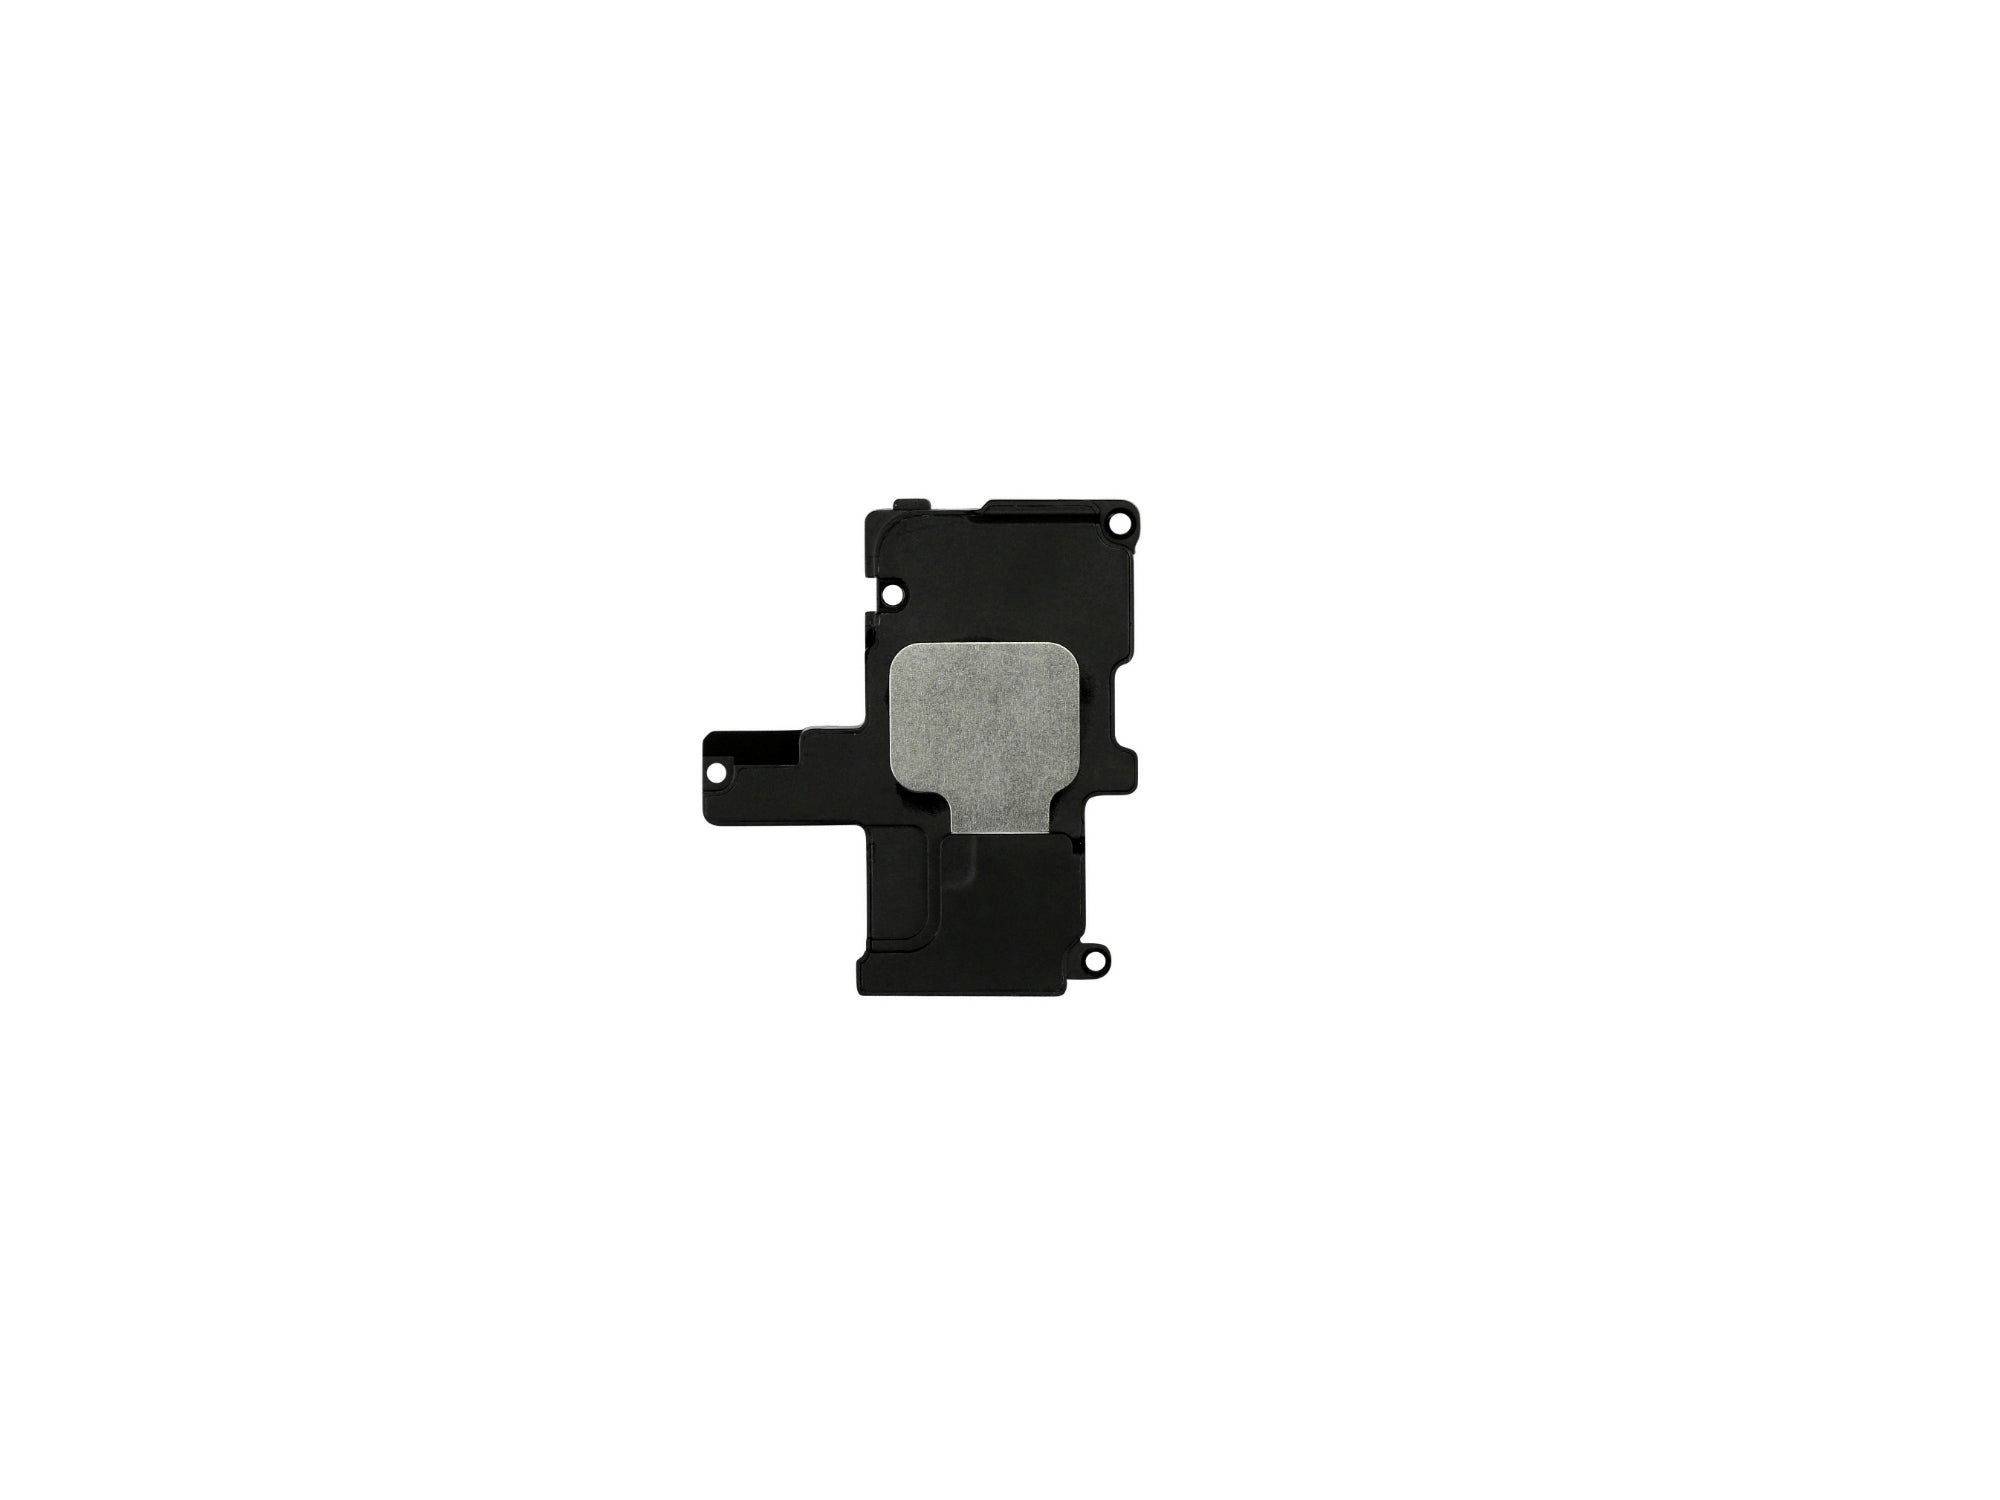 iPhone 6 Loudspeaker Replacement Kit